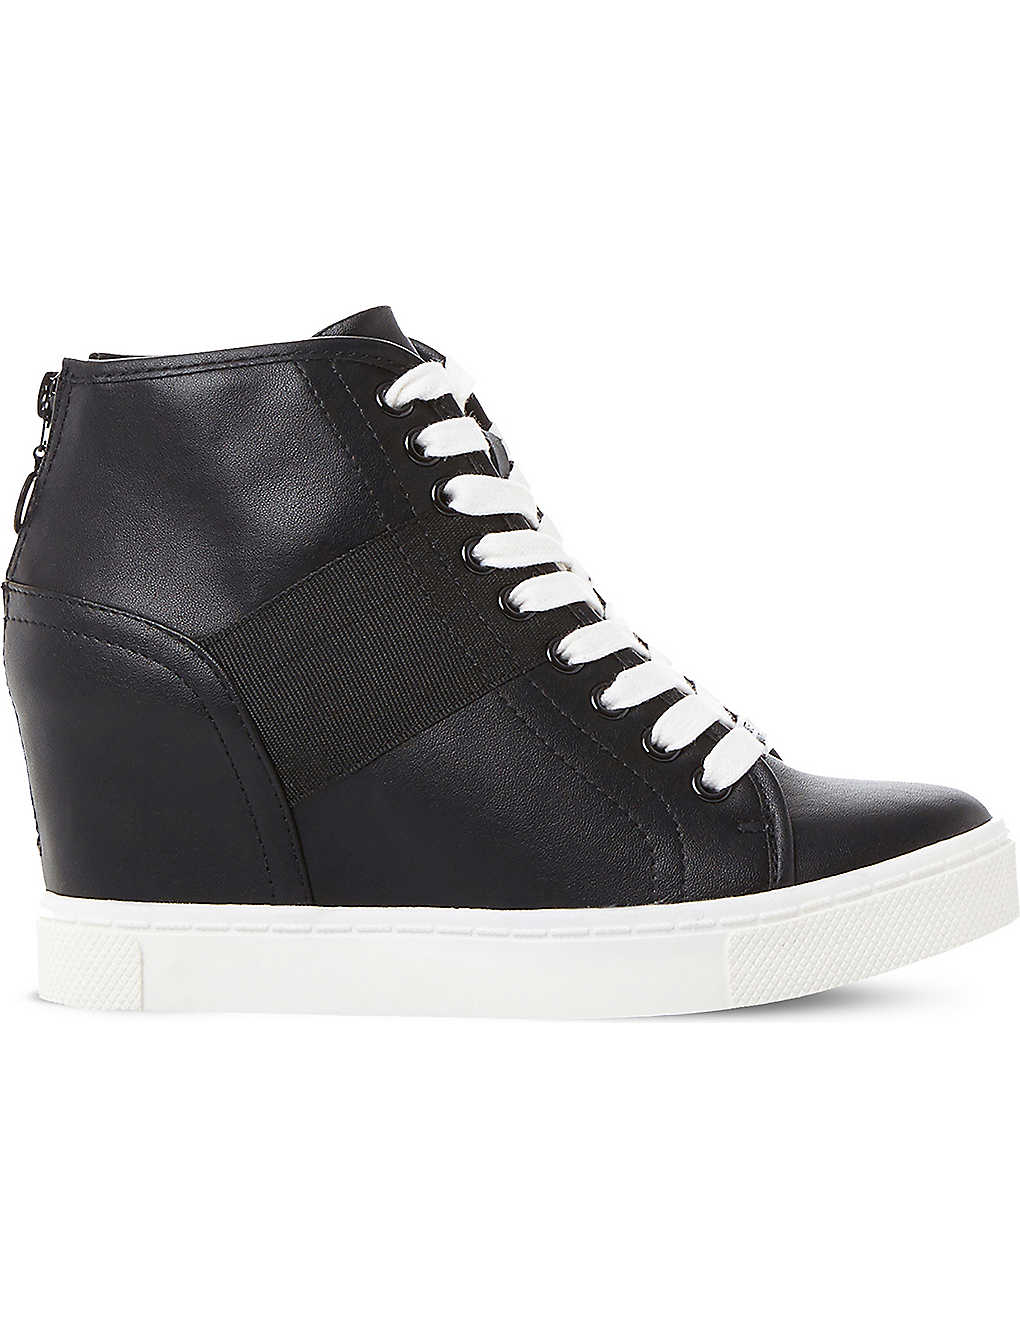 a352d7a813b STEVE MADDEN - Lussious lace-up wedge trainers   Selfridges.com